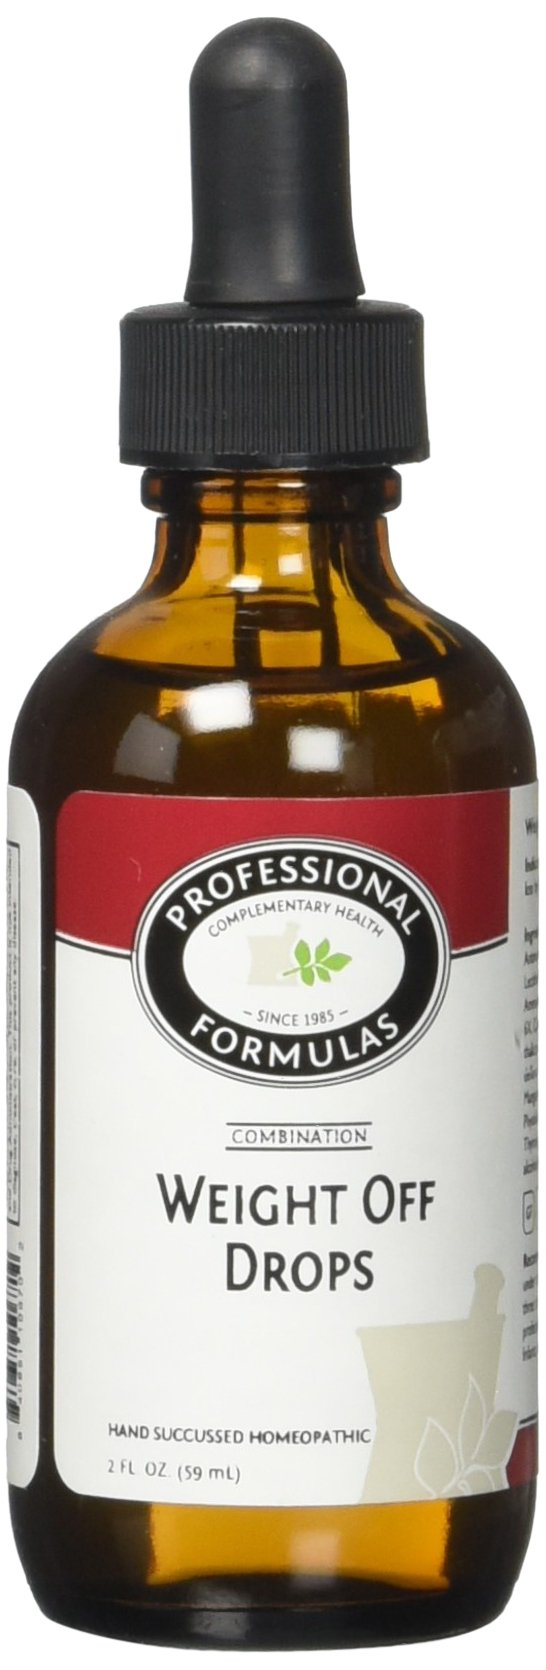 Weight Off Drops 2oz by Professional Formulas